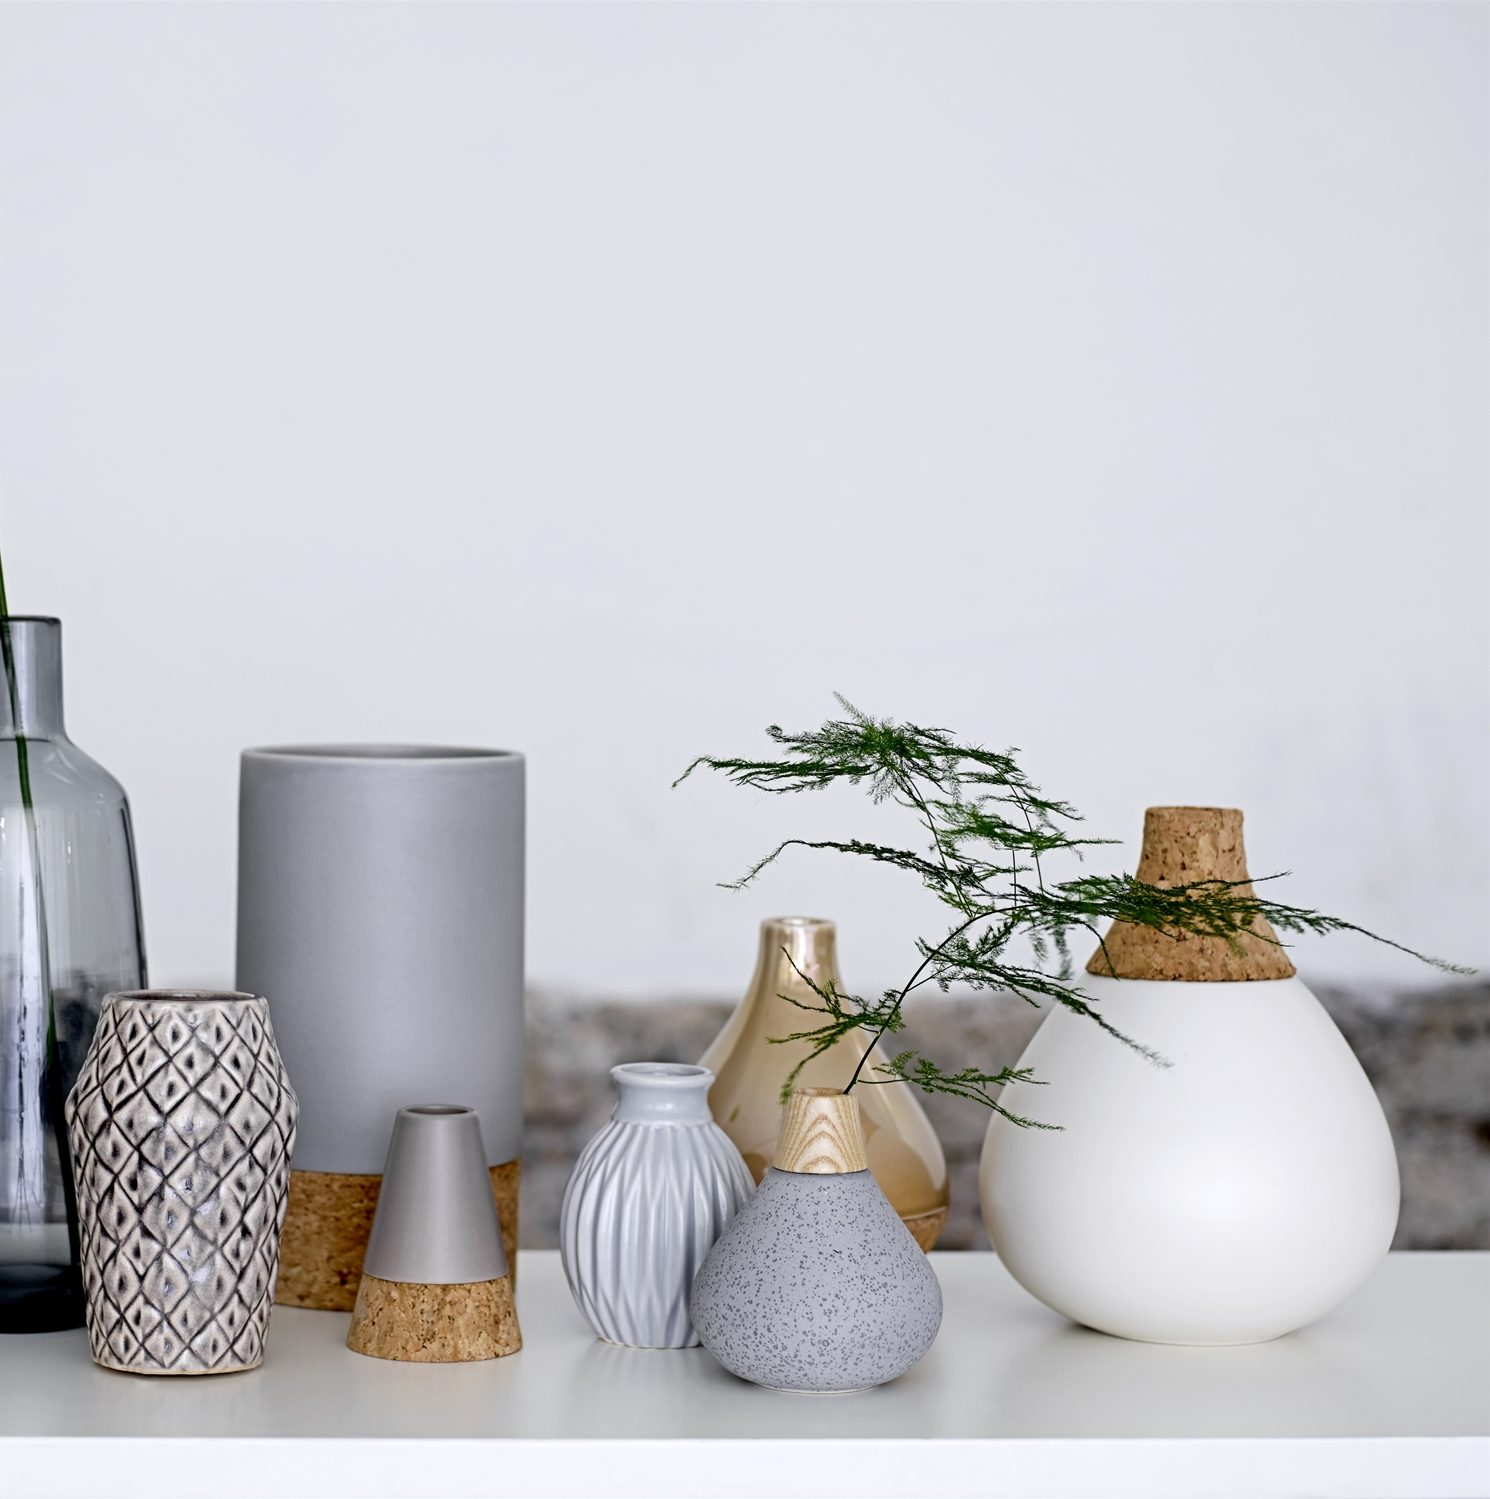 design vase bloomingville les gifts On bloomingville vazen